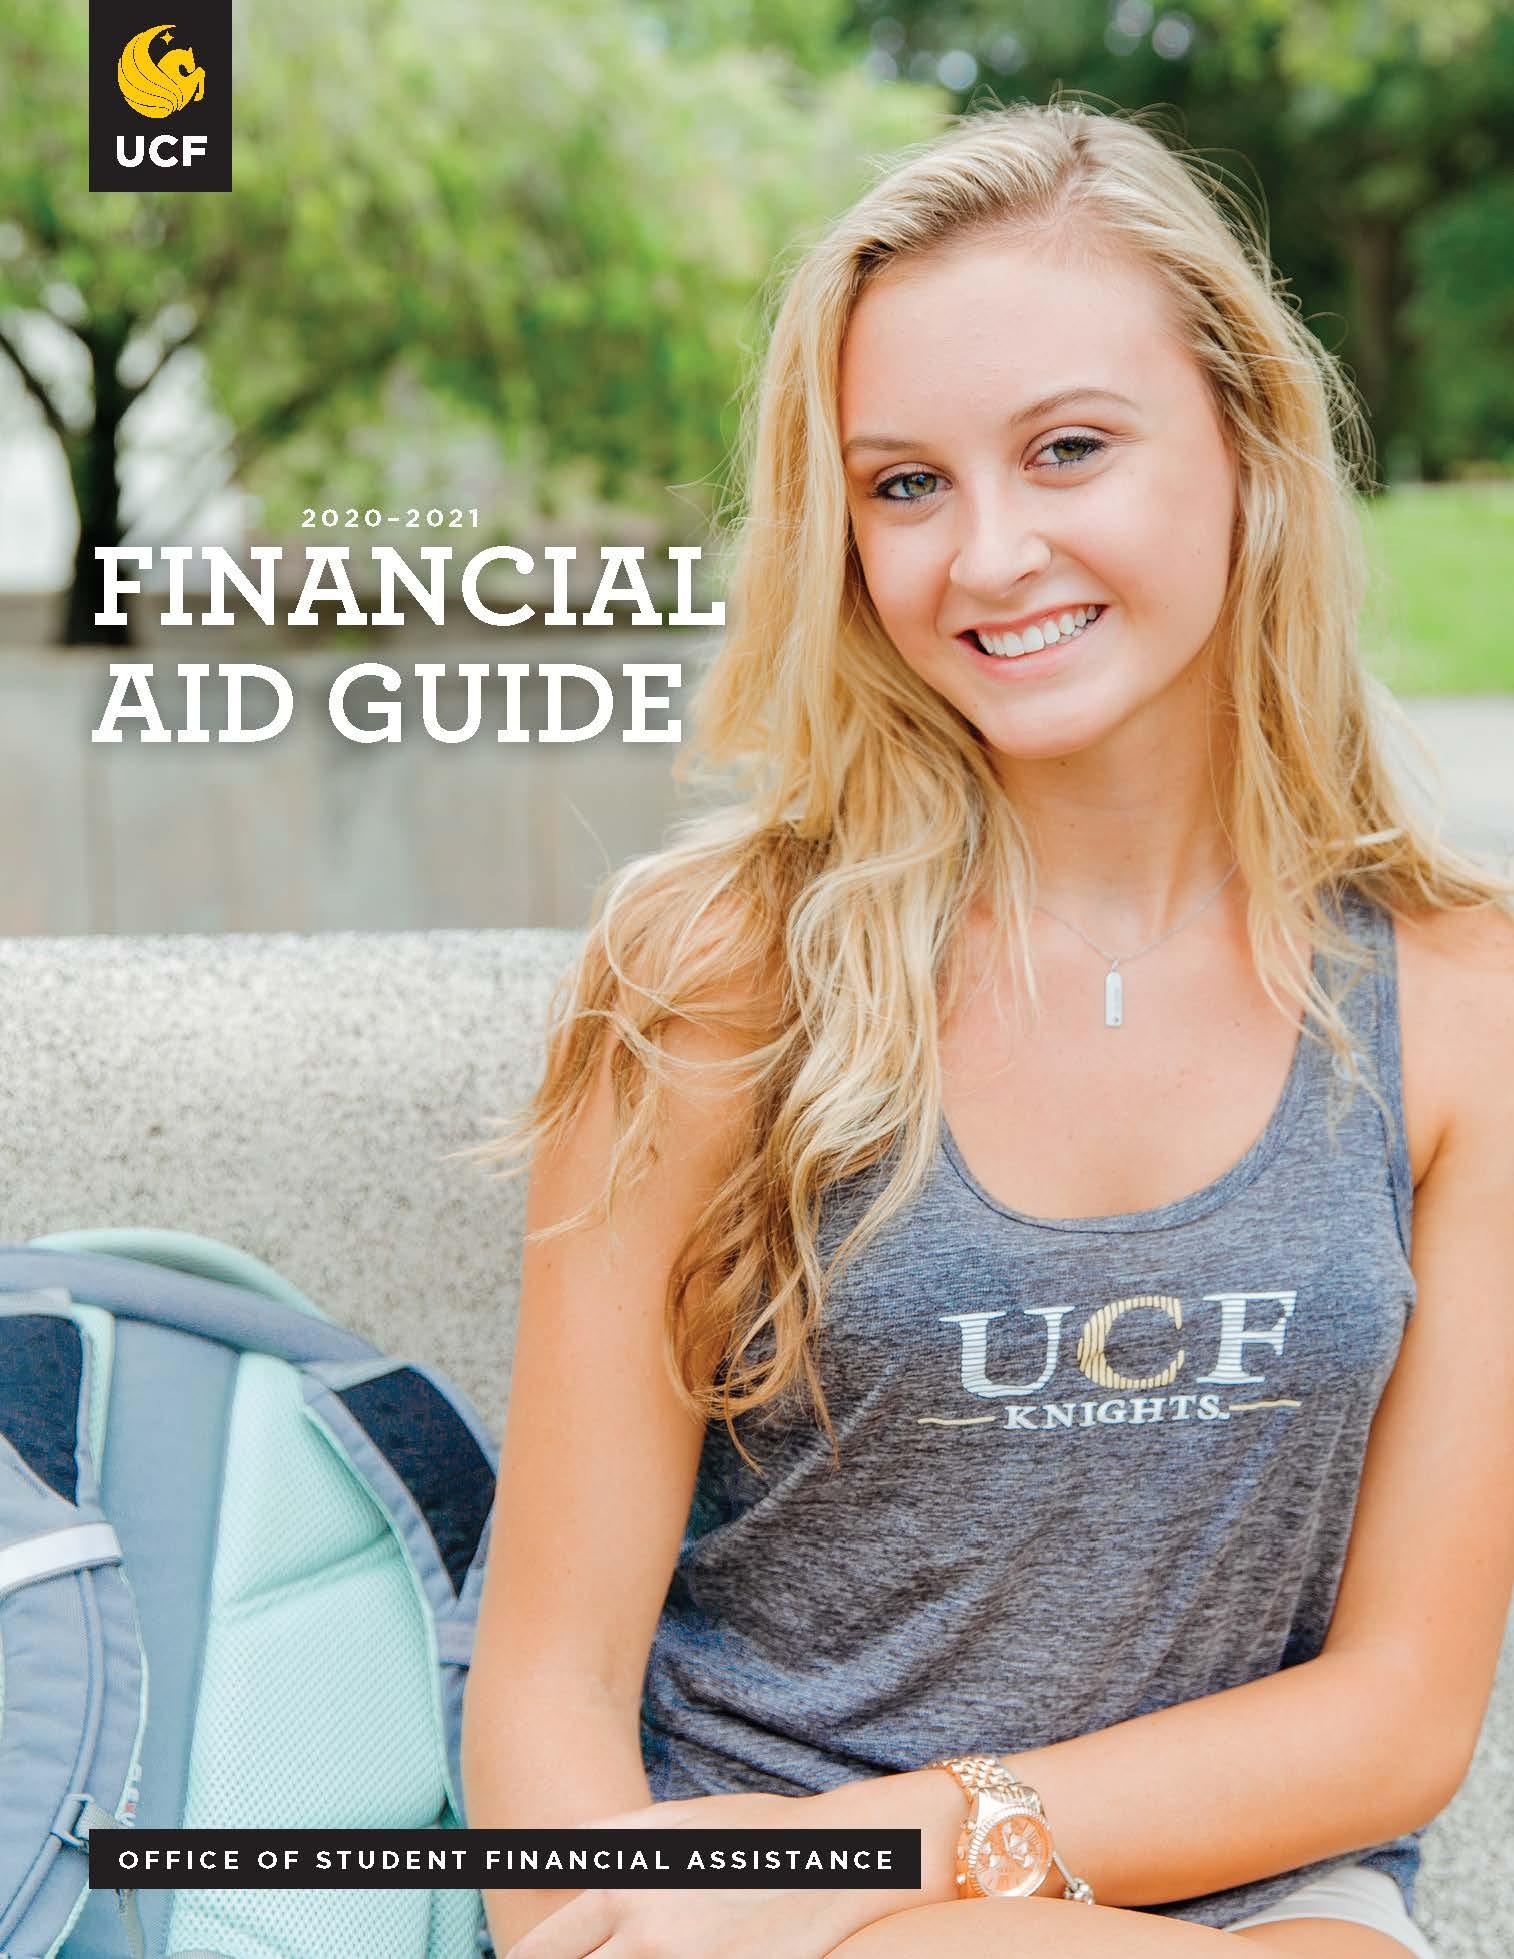 View interactive 2020-2021 Financial Aid Guide